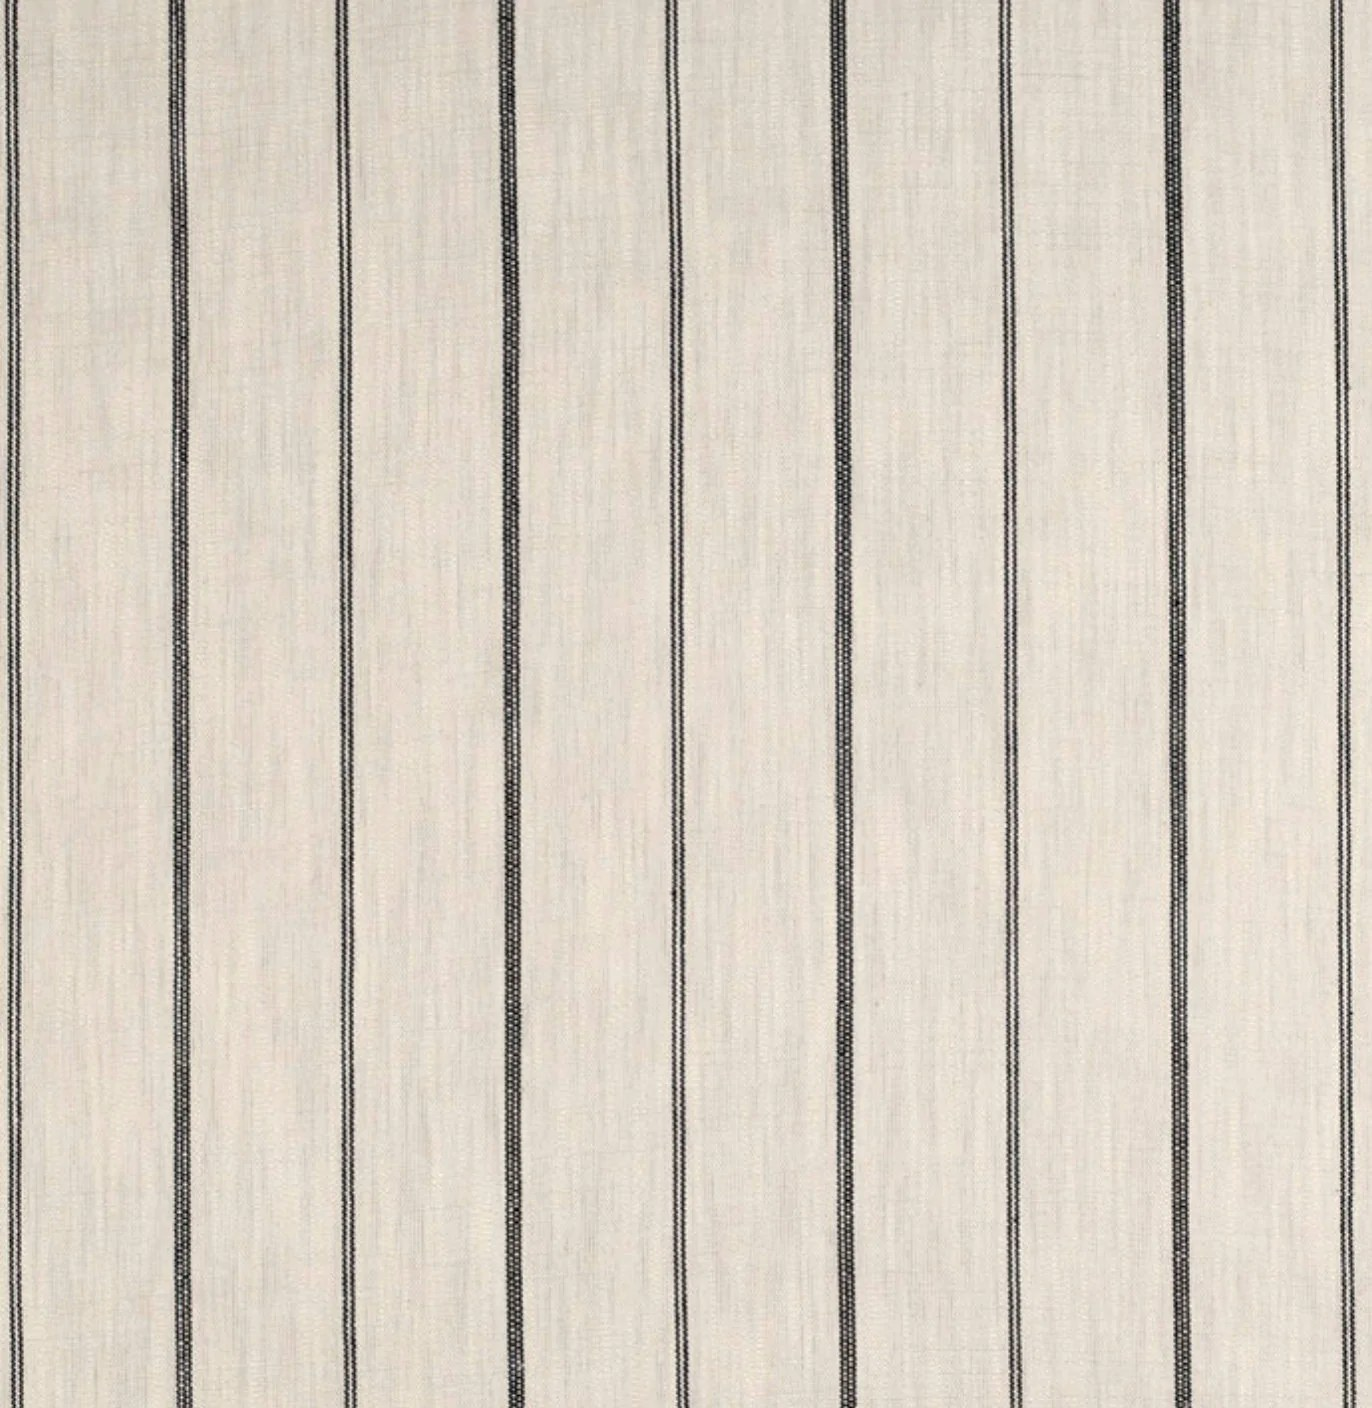 Fullsize Of Black And White Striped Curtains